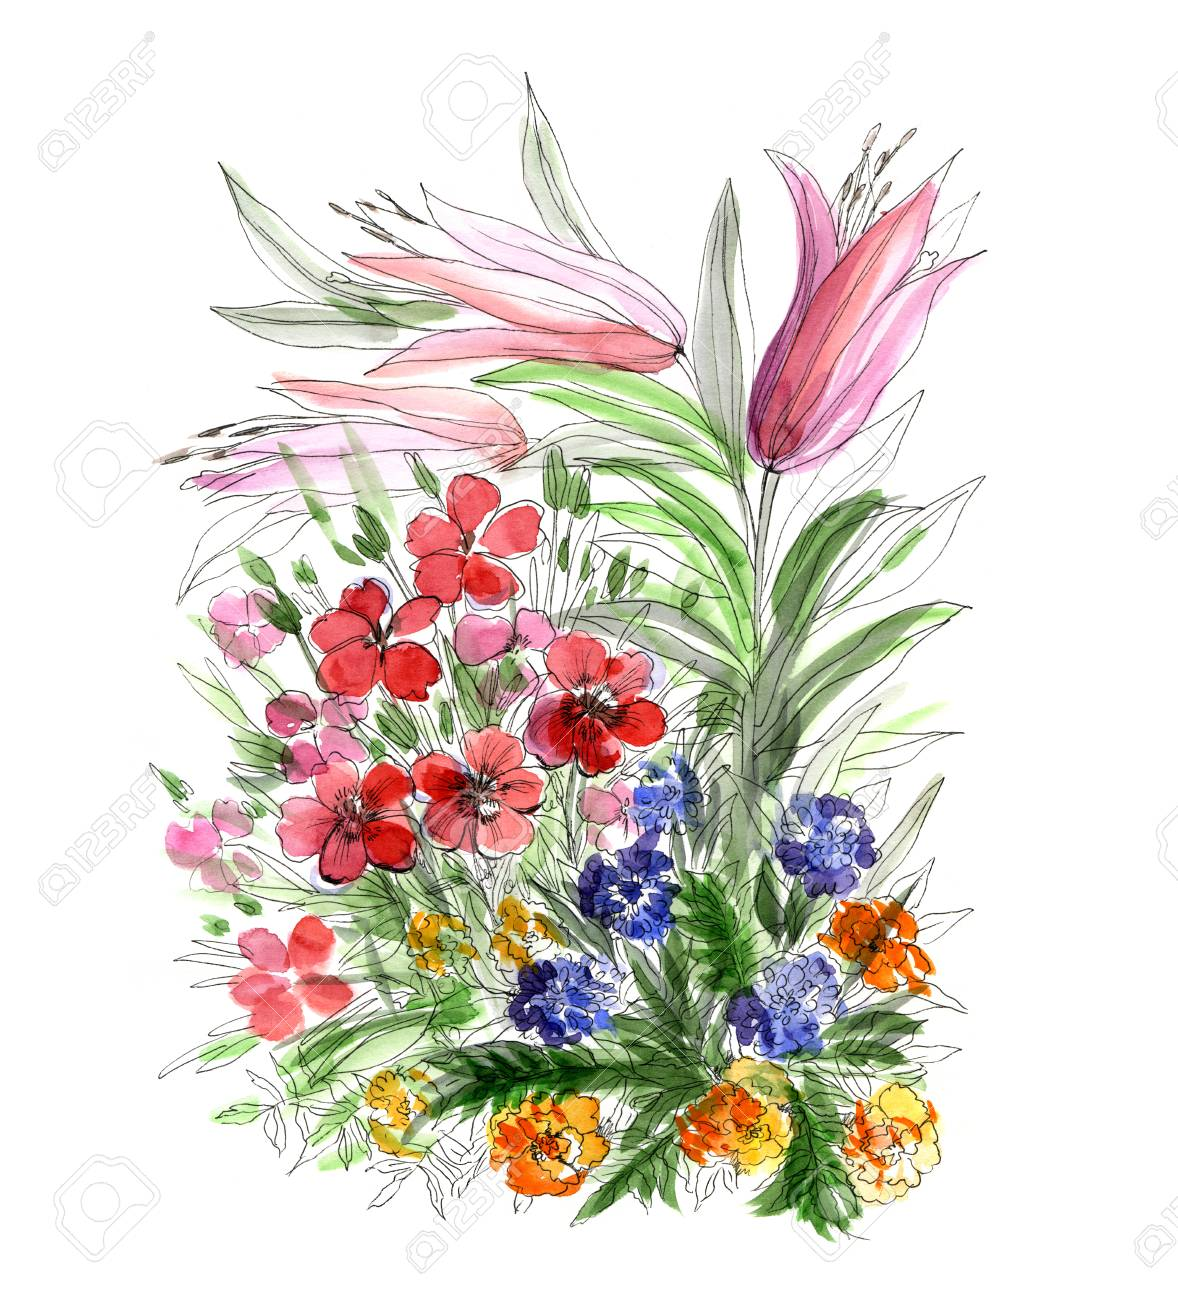 Decorative Watercolor Hand Drawing Bouquet Of Flowers Stock Photo ...